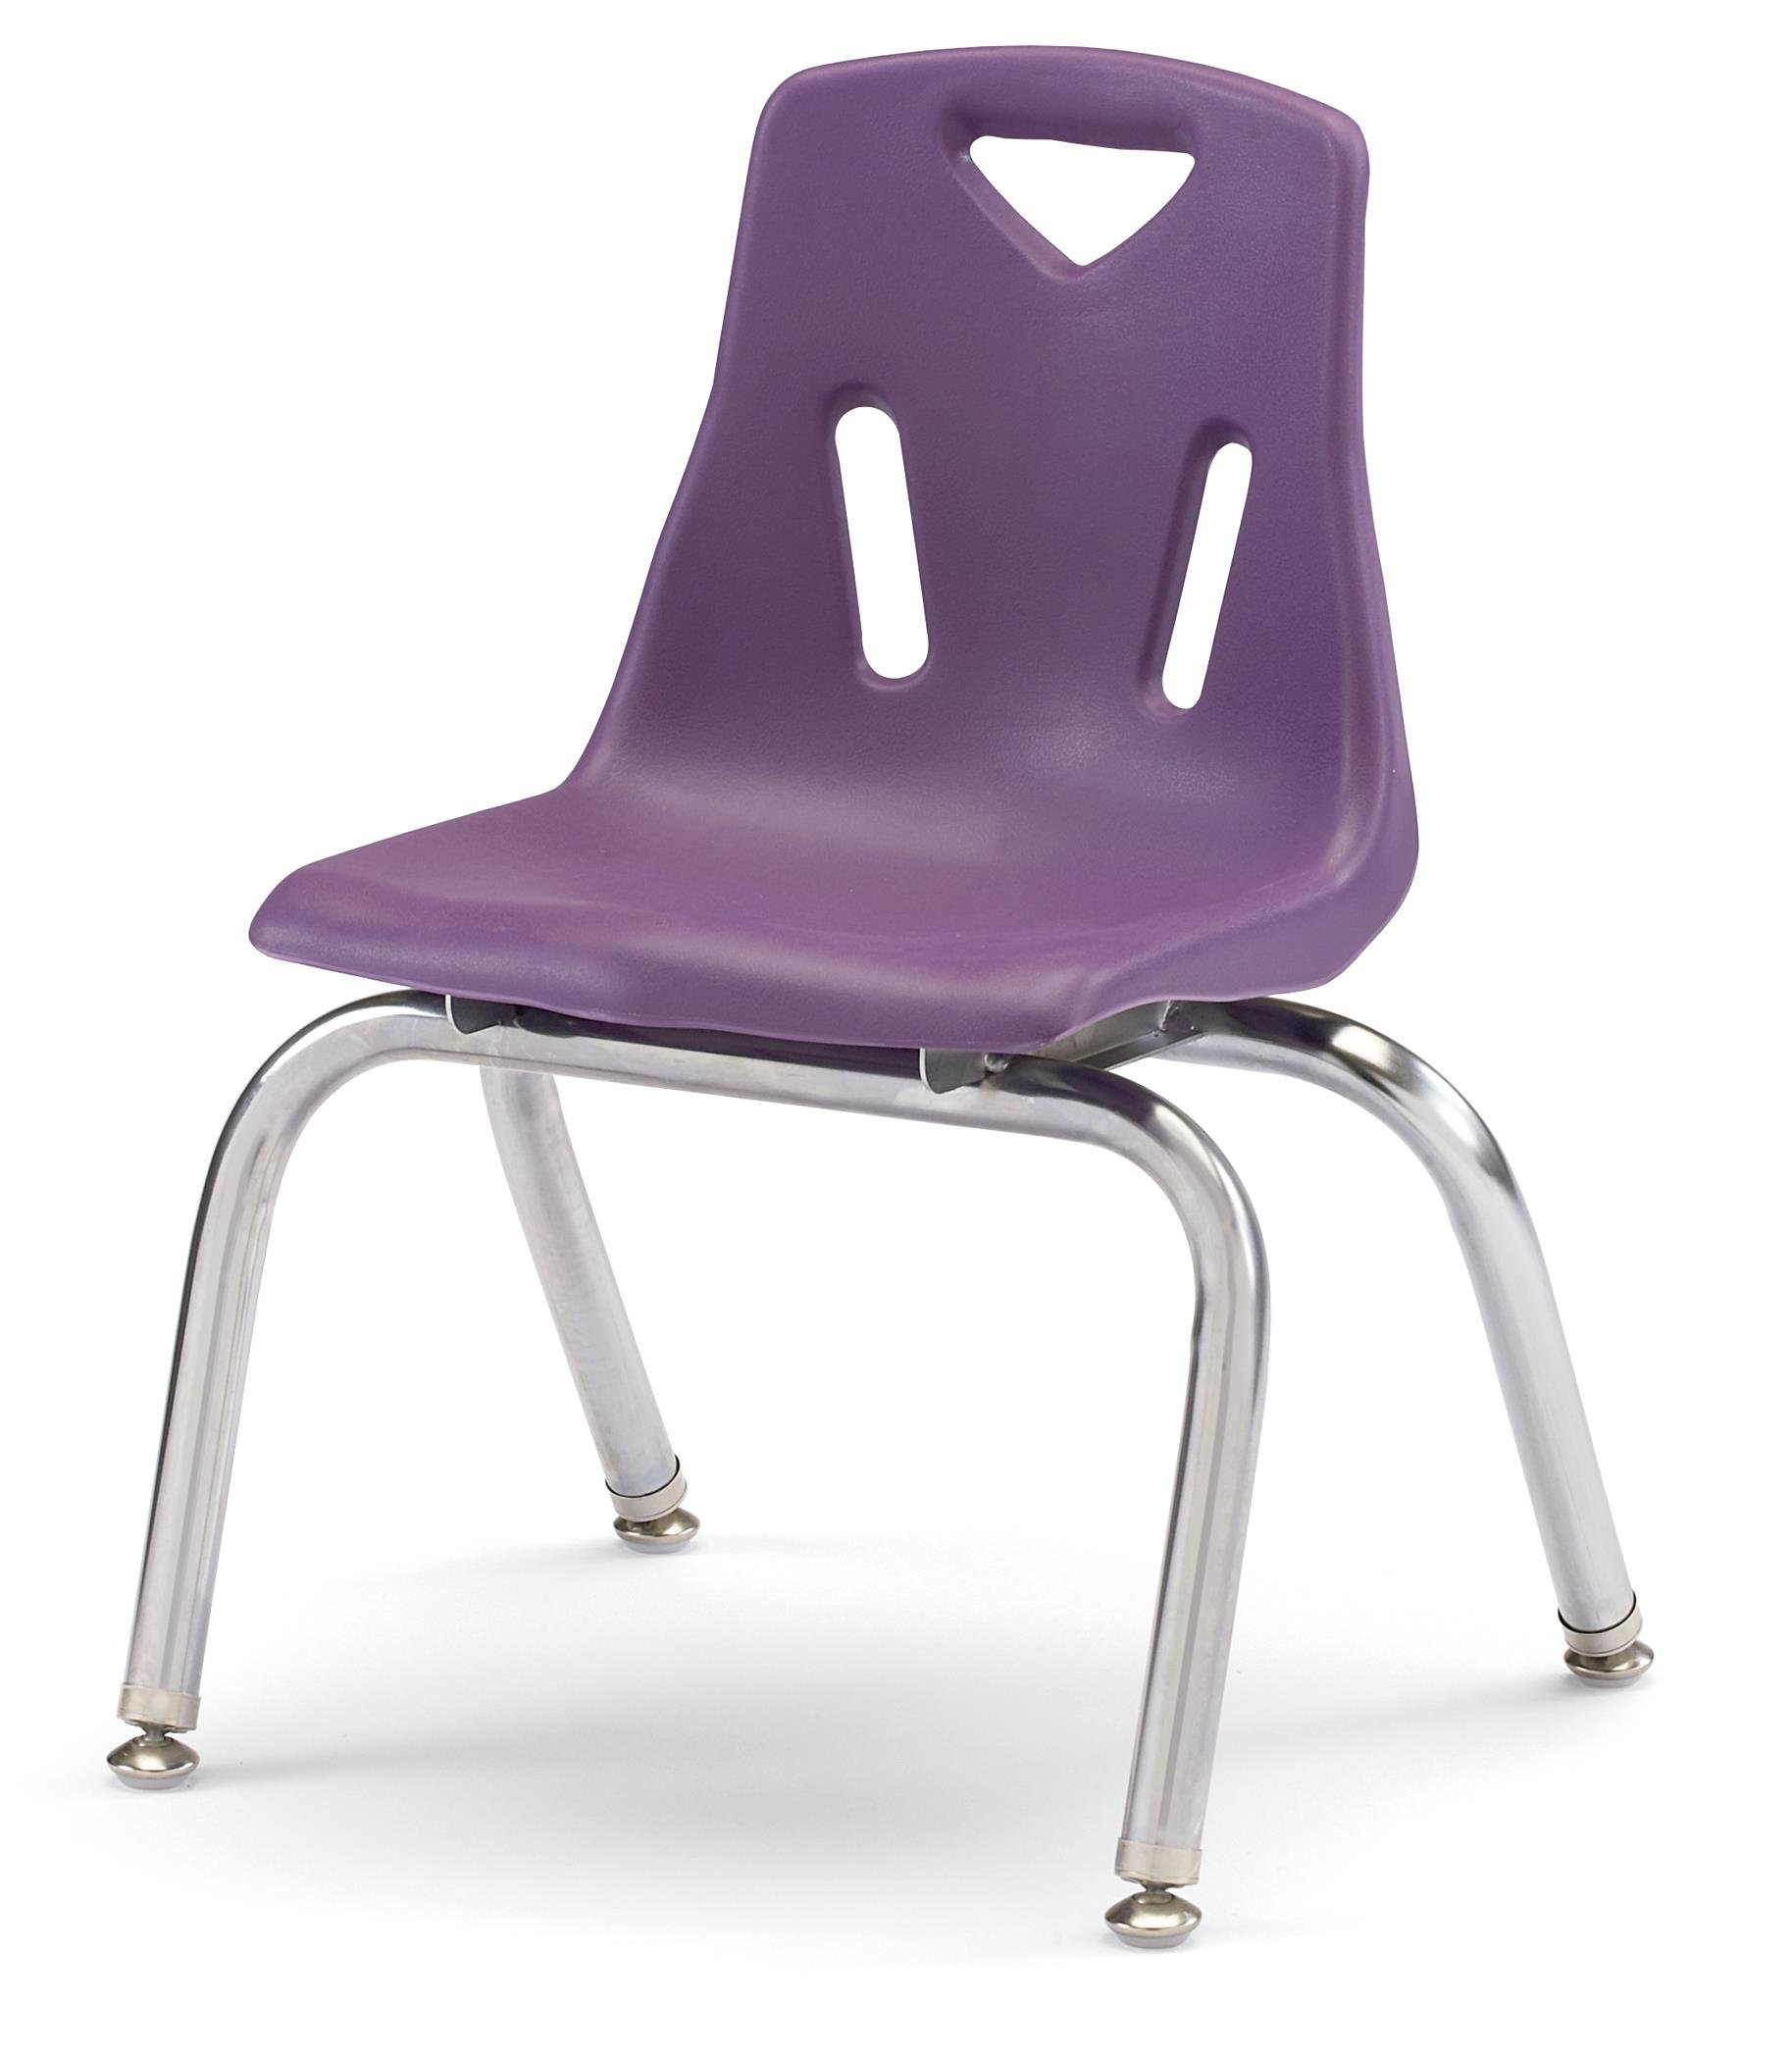 Berries 8148JC6004 Stacking Chairs with Chrome-Plated Legs, 18'' Ht, 19.5'' Height, 31.5'' Wide, 23.5'' Length, Purple (Pack of 6)